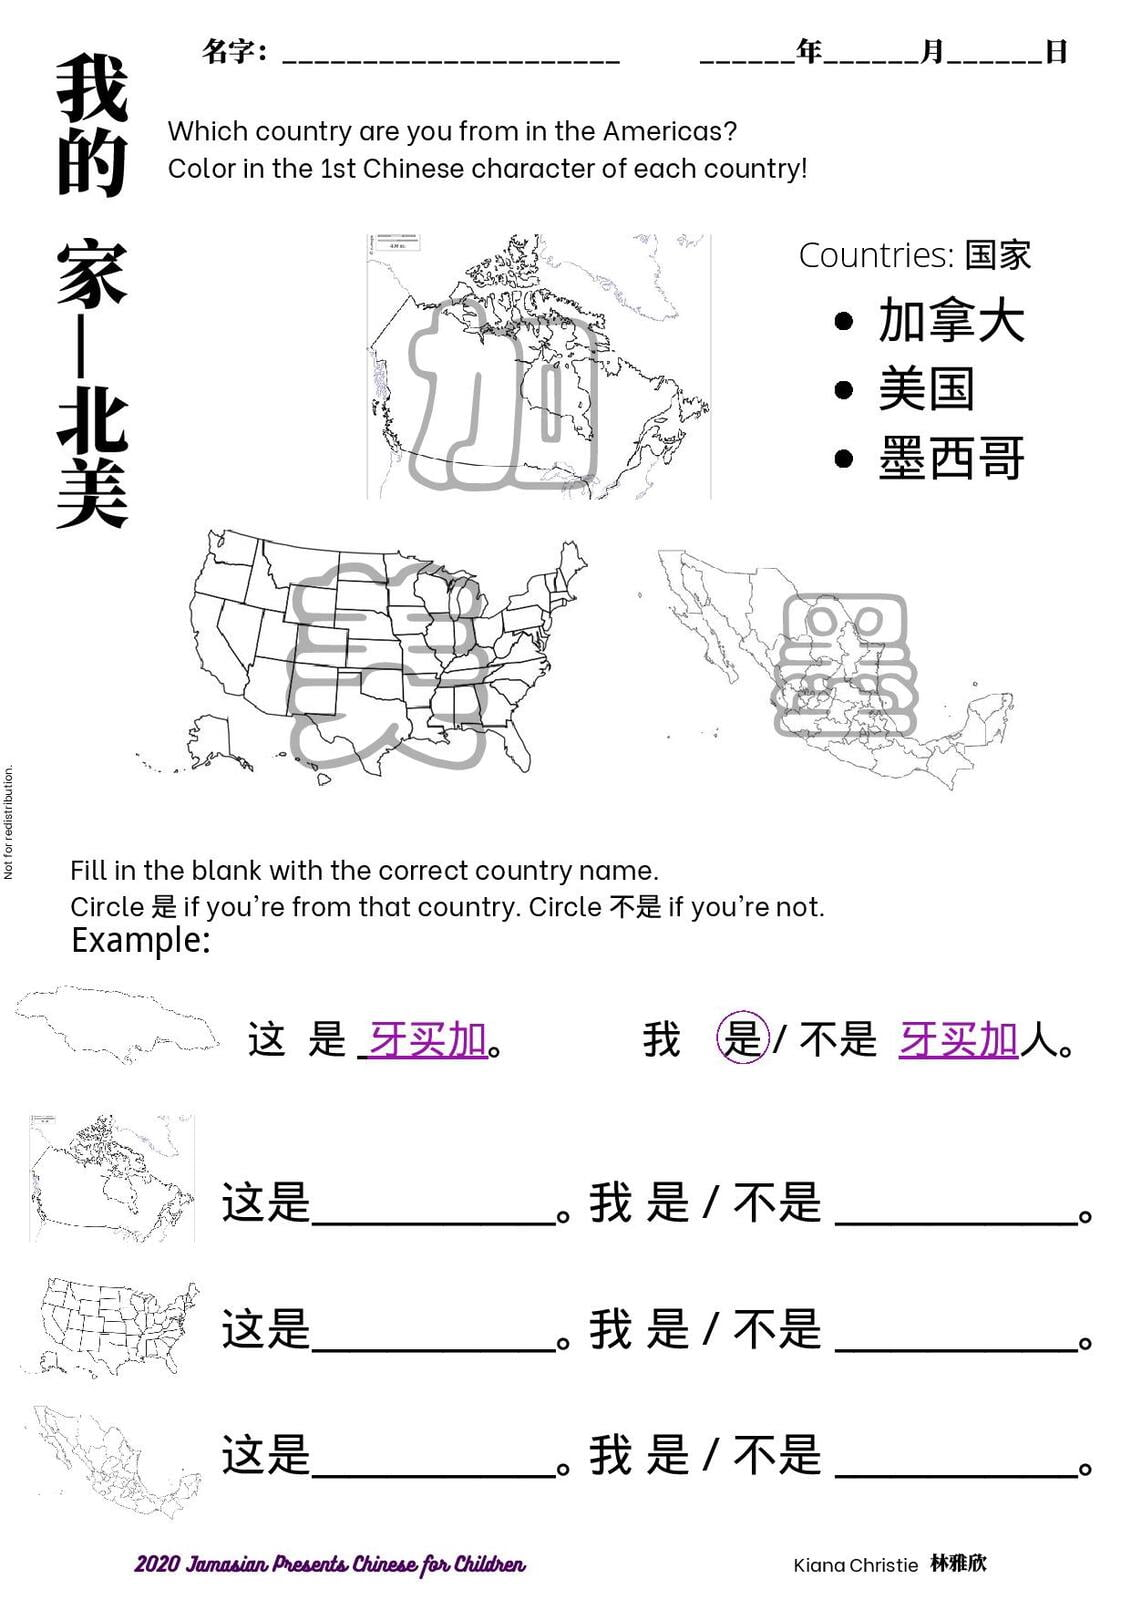 Sample of worksheets used for Chinese classes at Key Babel.